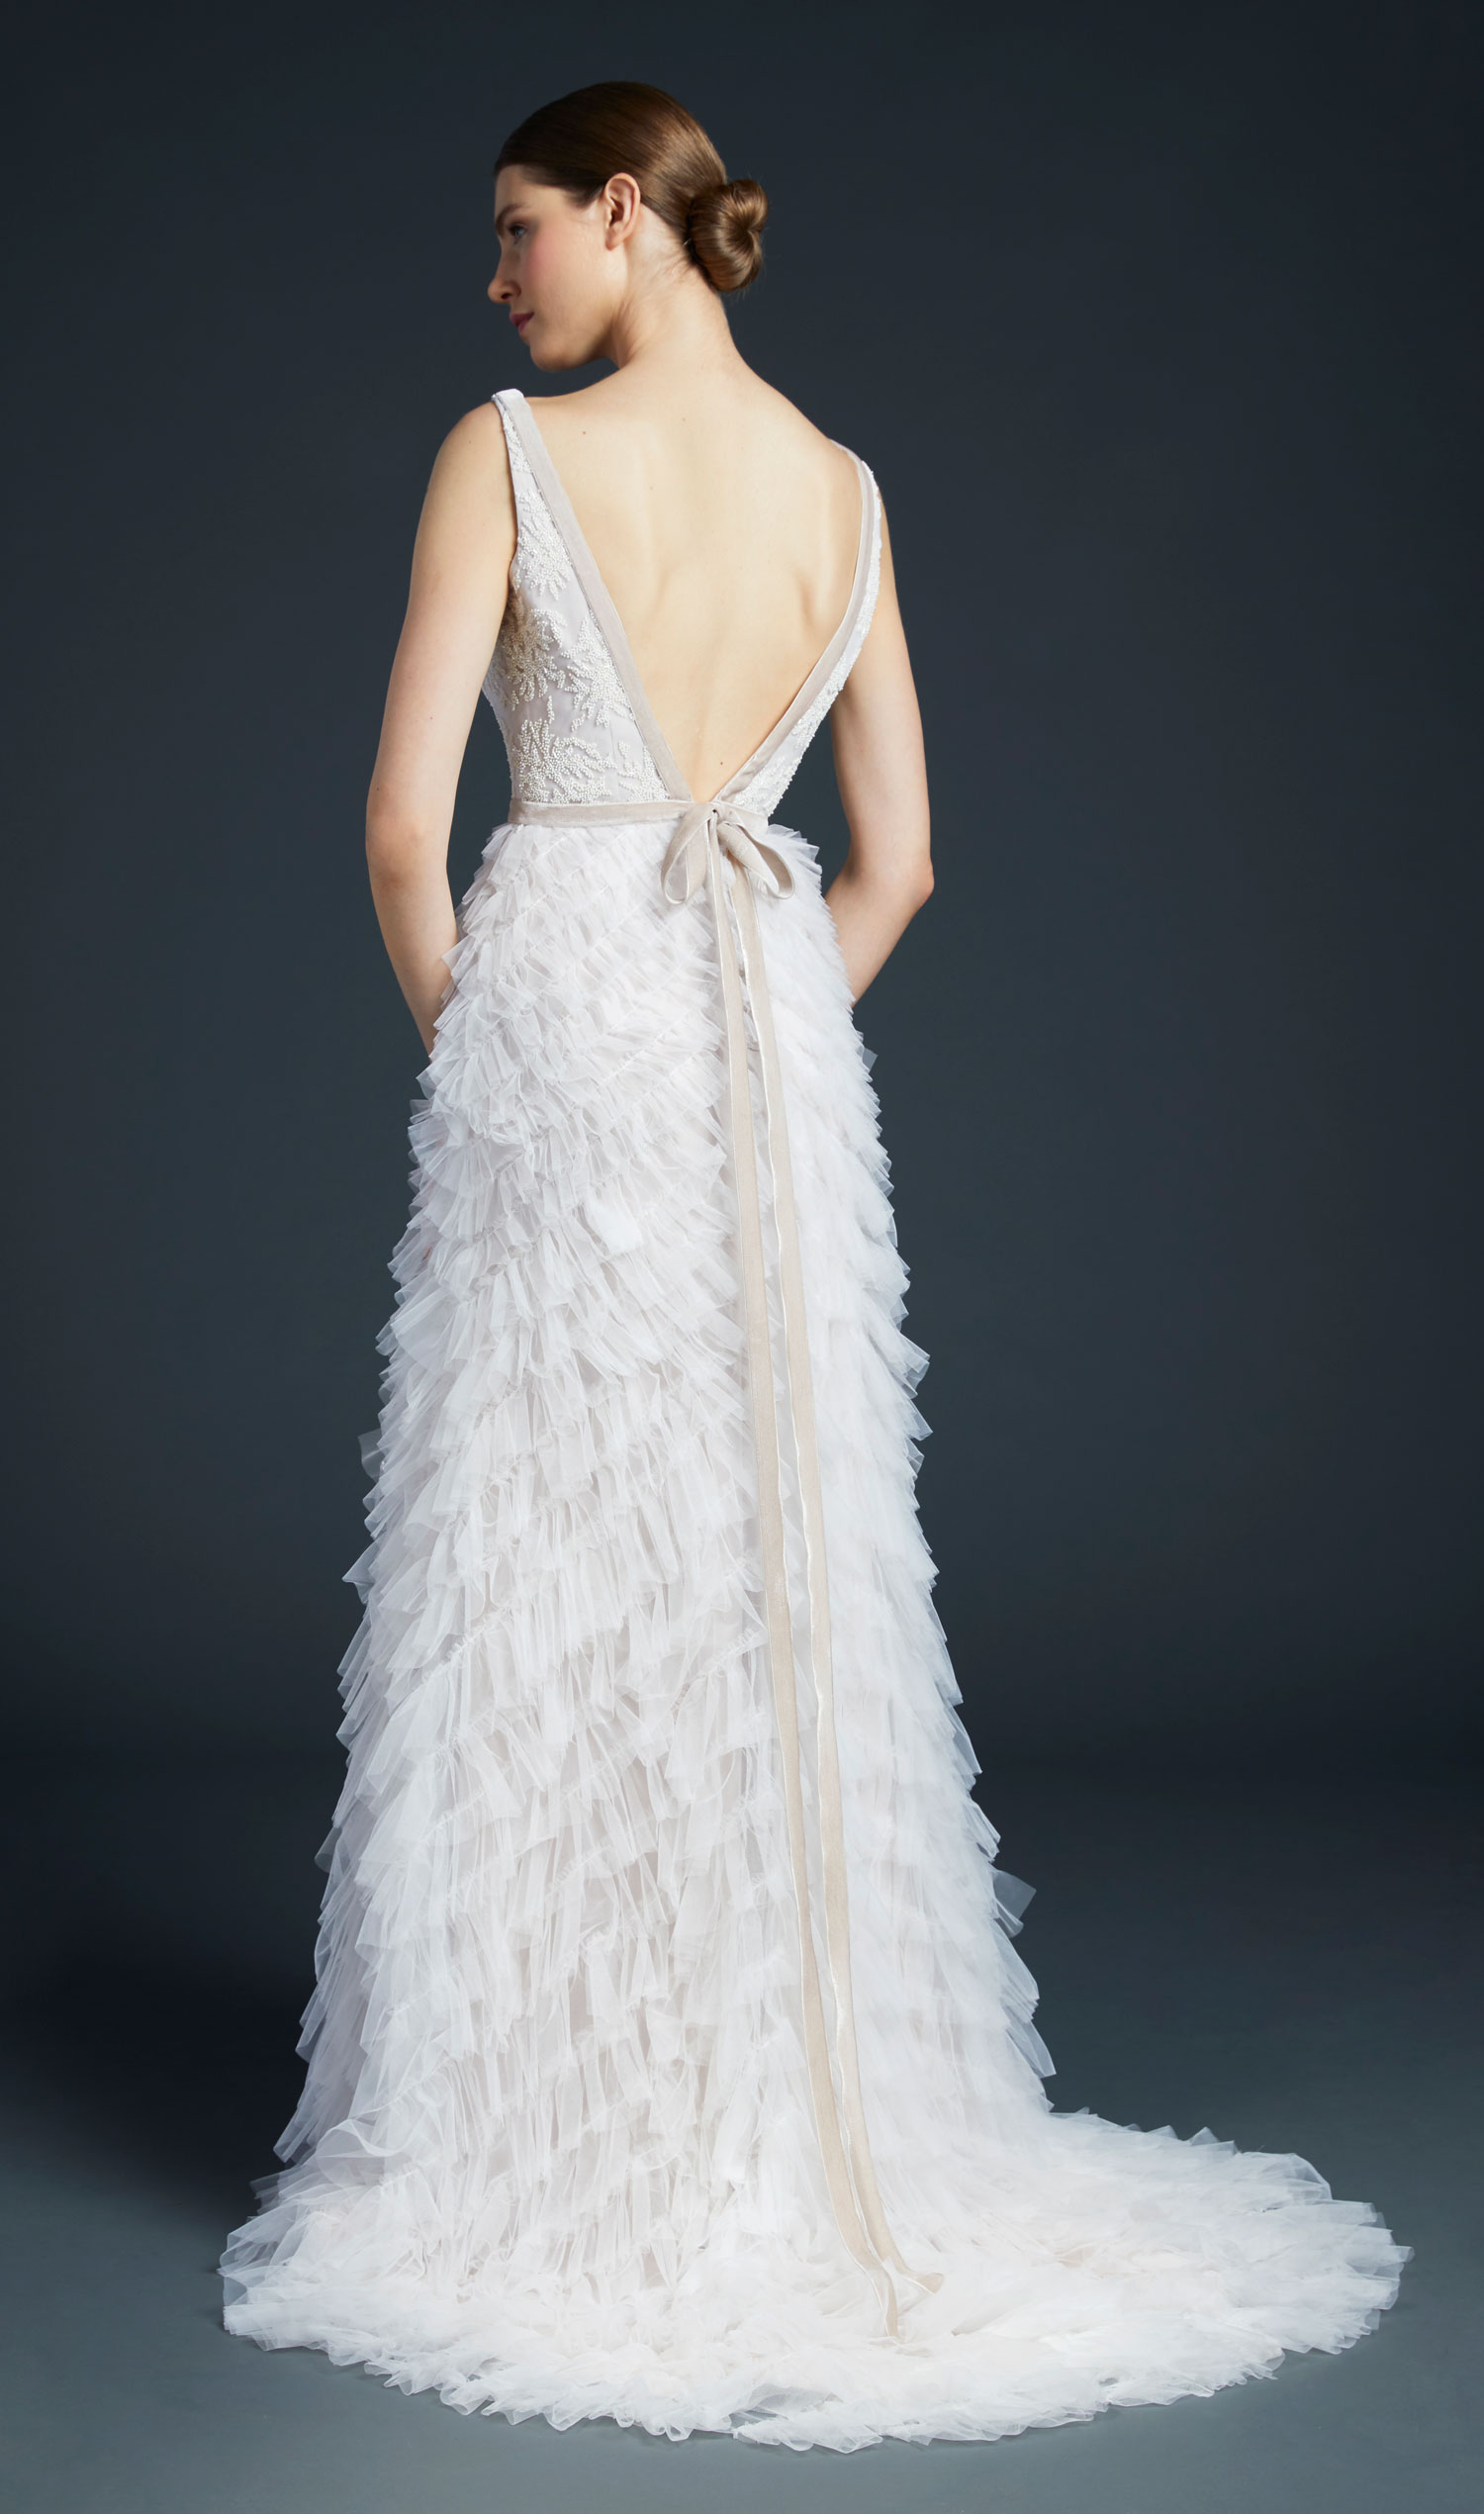 Anne Barge Bolta wedding dress with ruffle skirt v back and bow in back